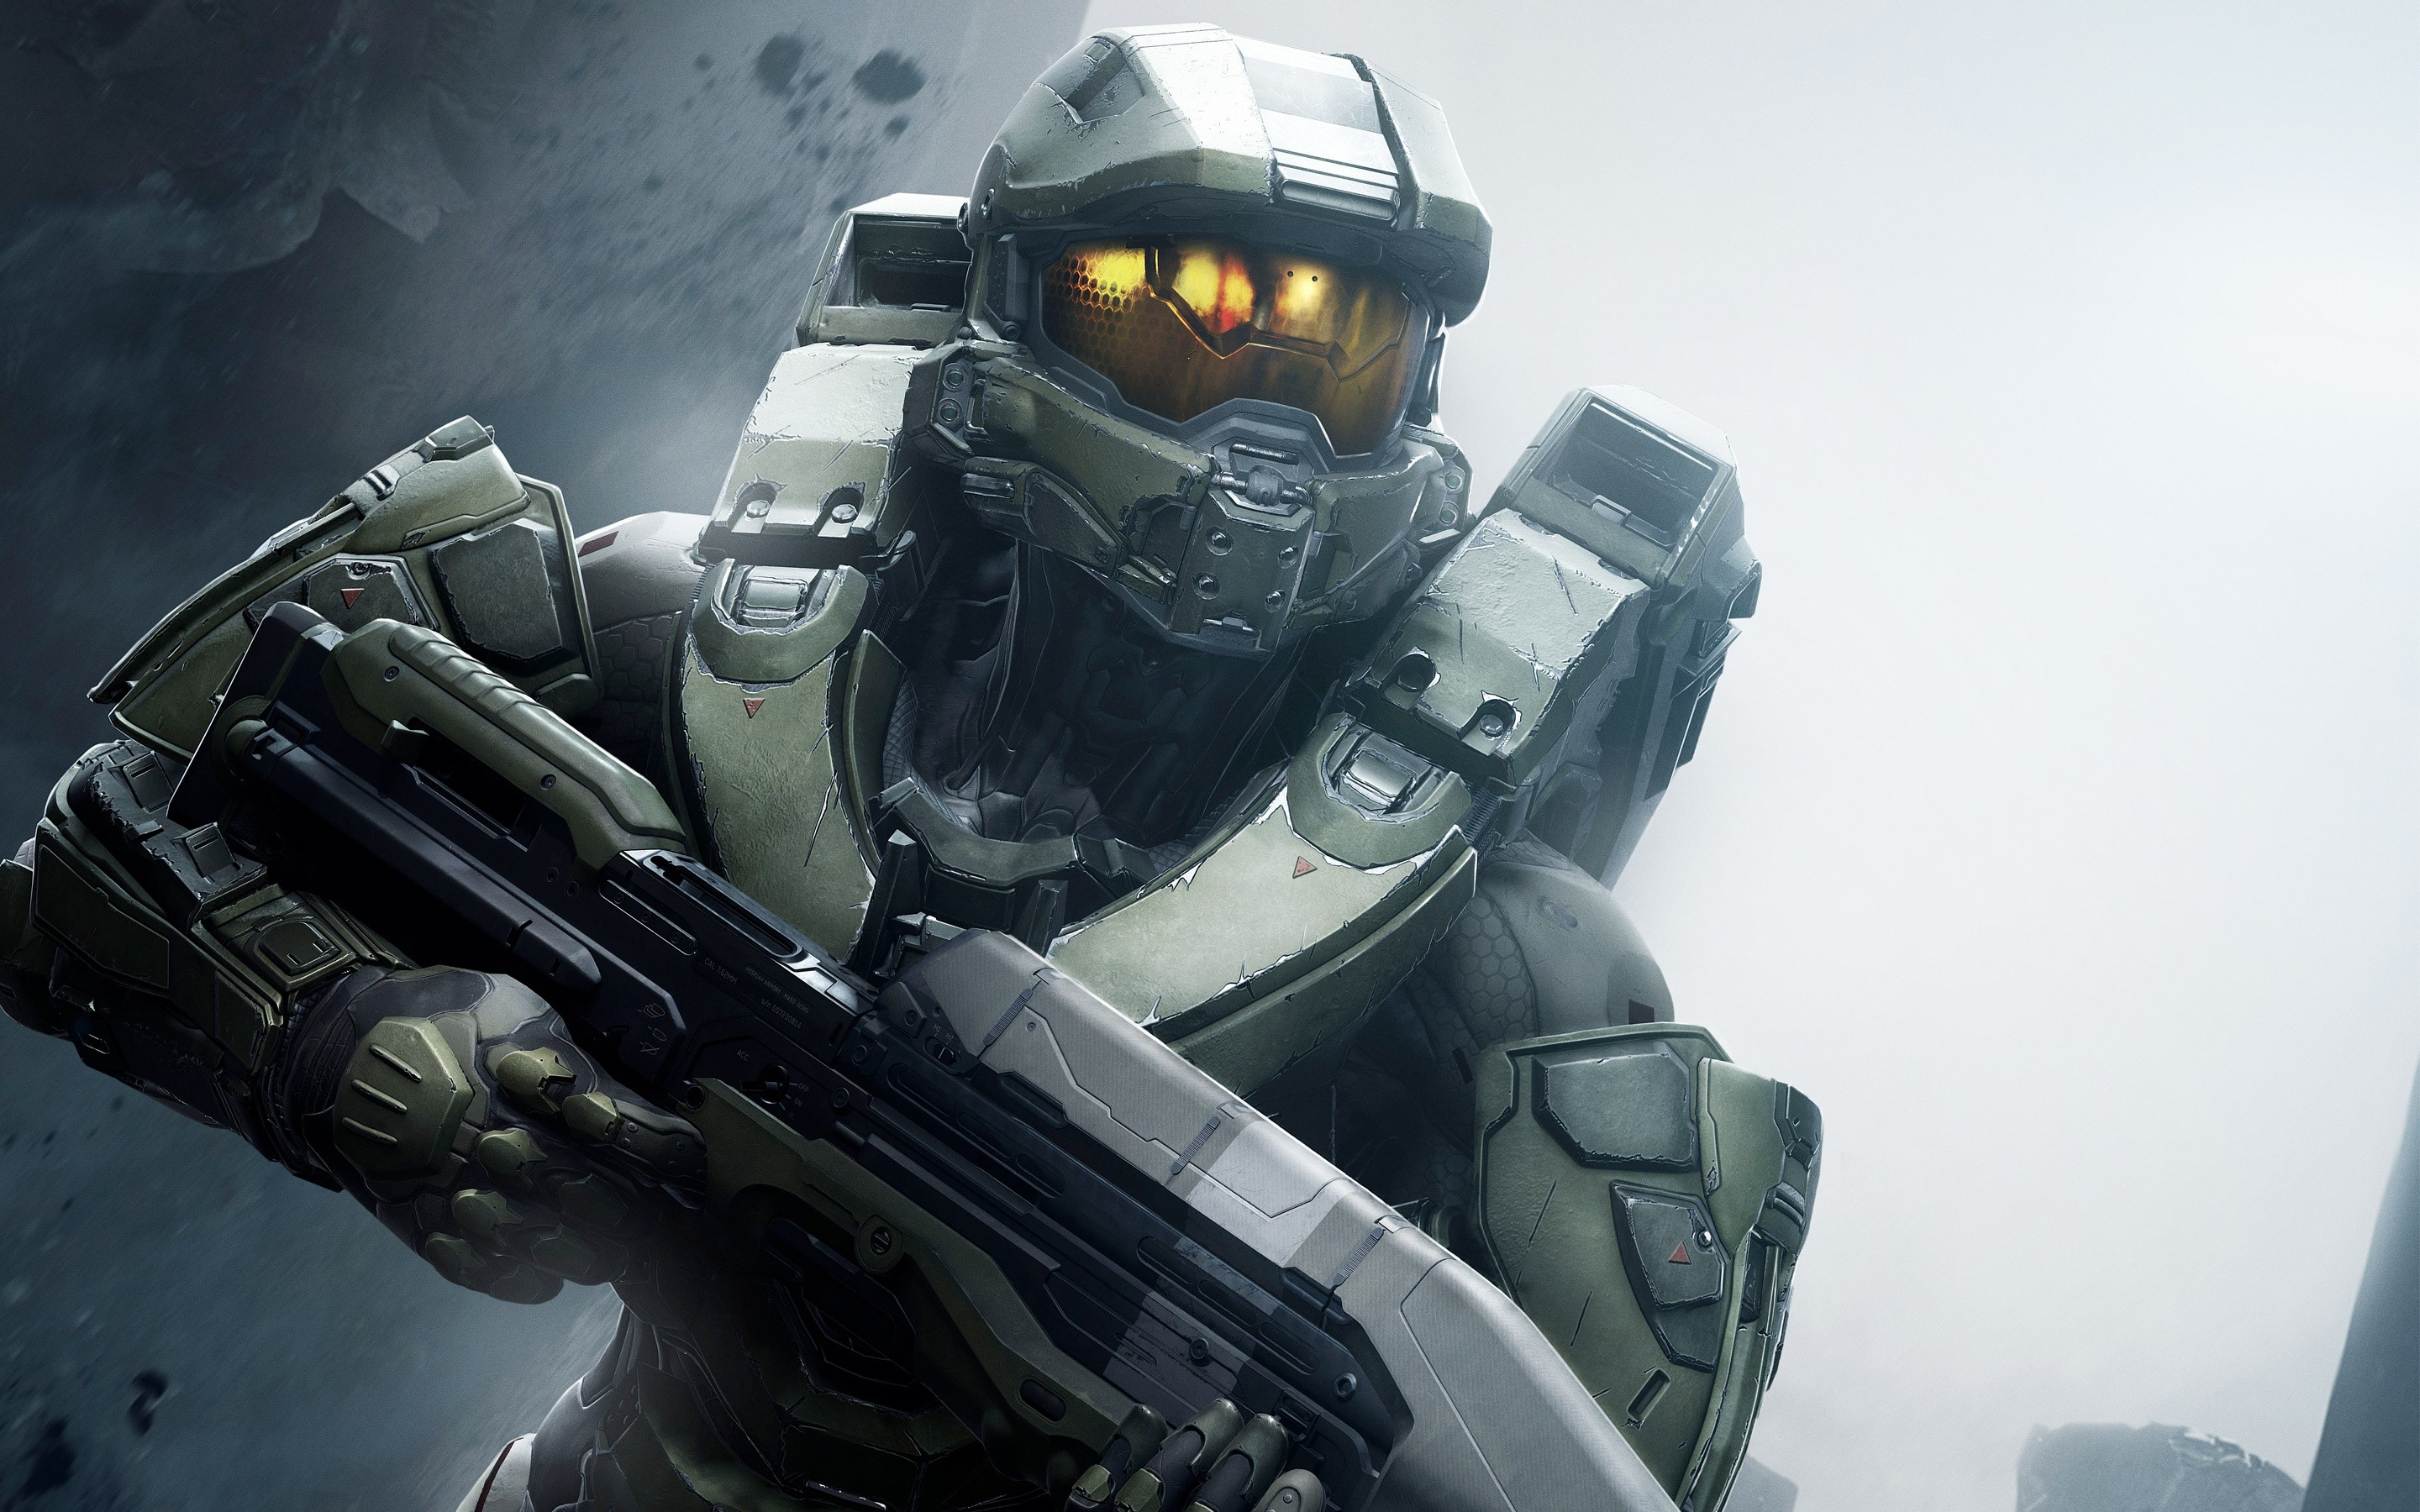 Wallpaper Chief on Halo 5